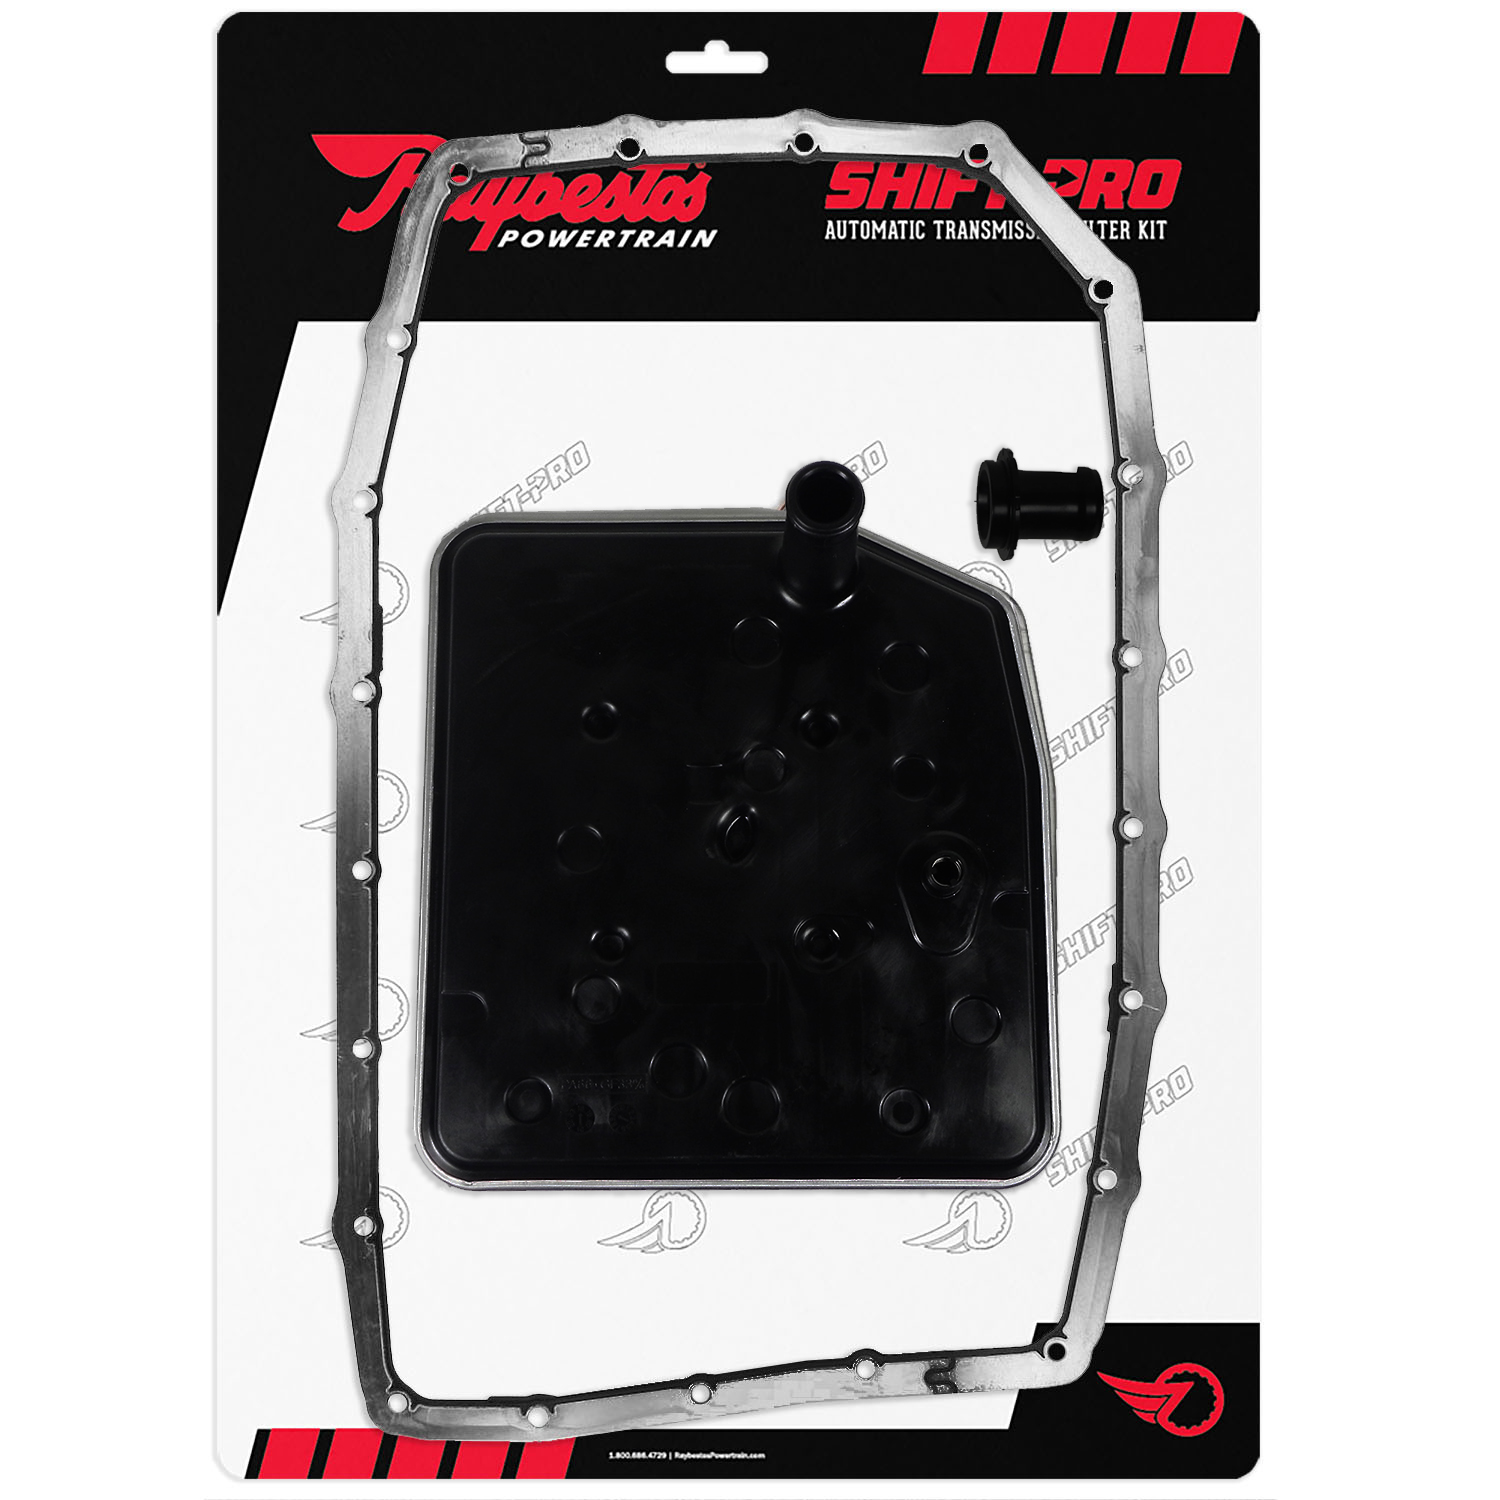 997271 | 2015-ON Shift-Pro Automatic Transmission Filter Kit